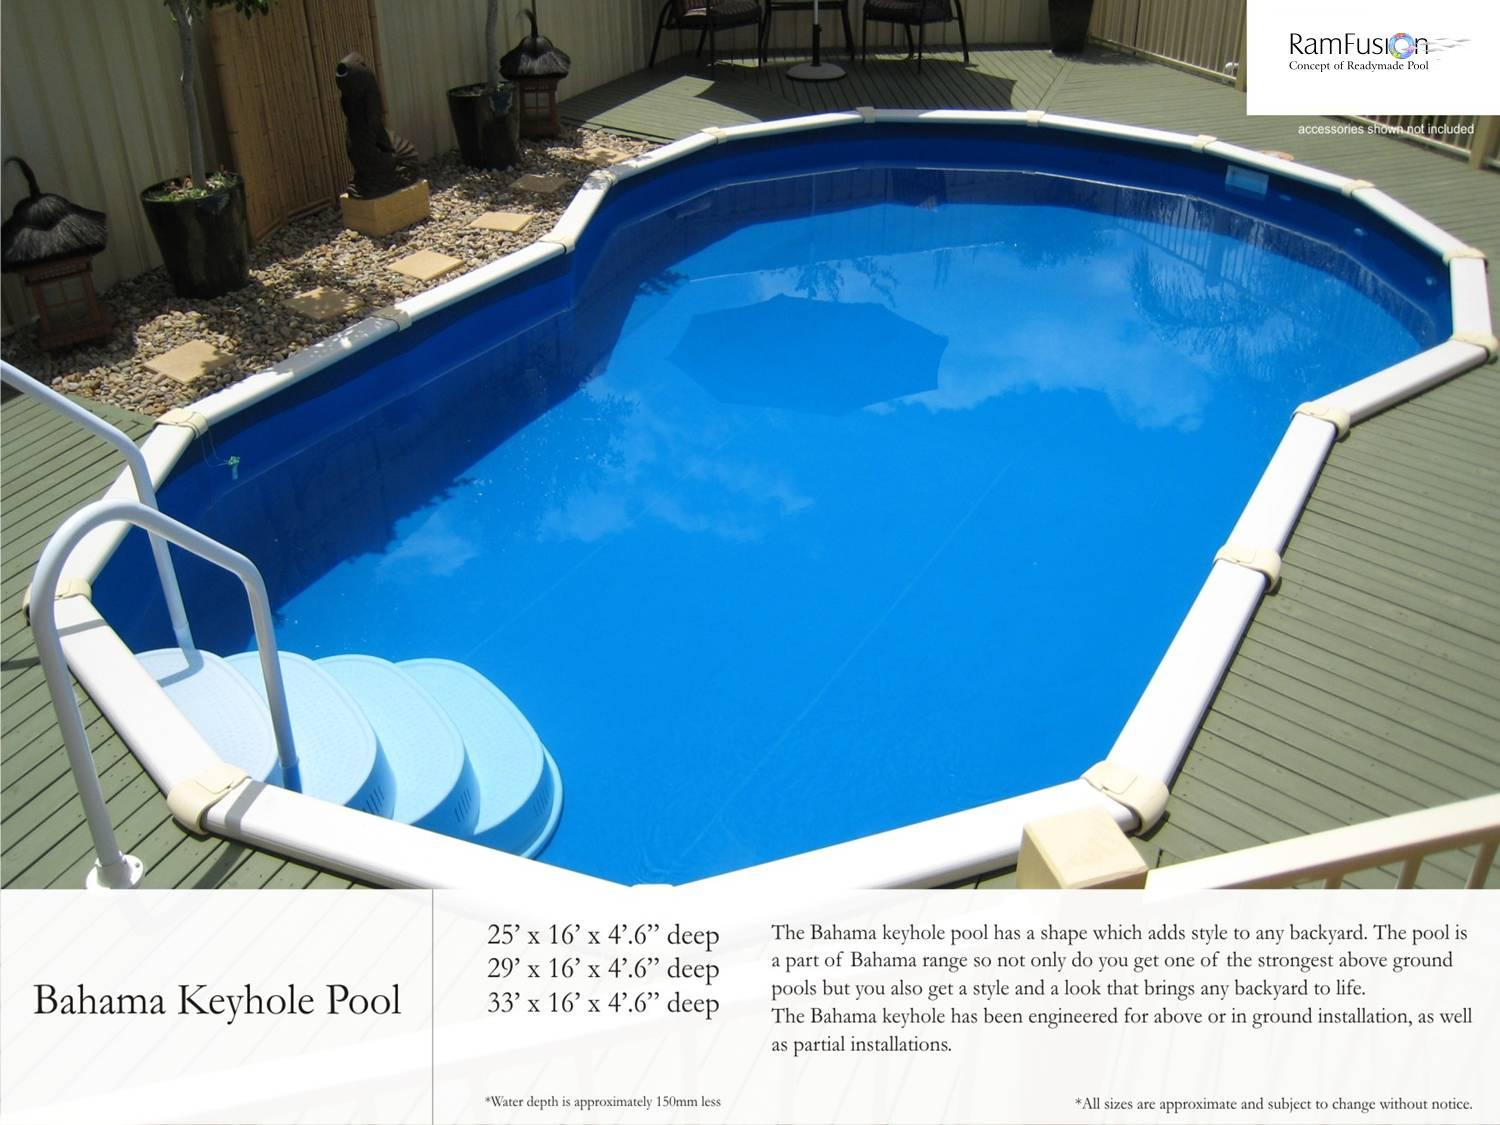 Readymade swimming pools: Pool Sizes